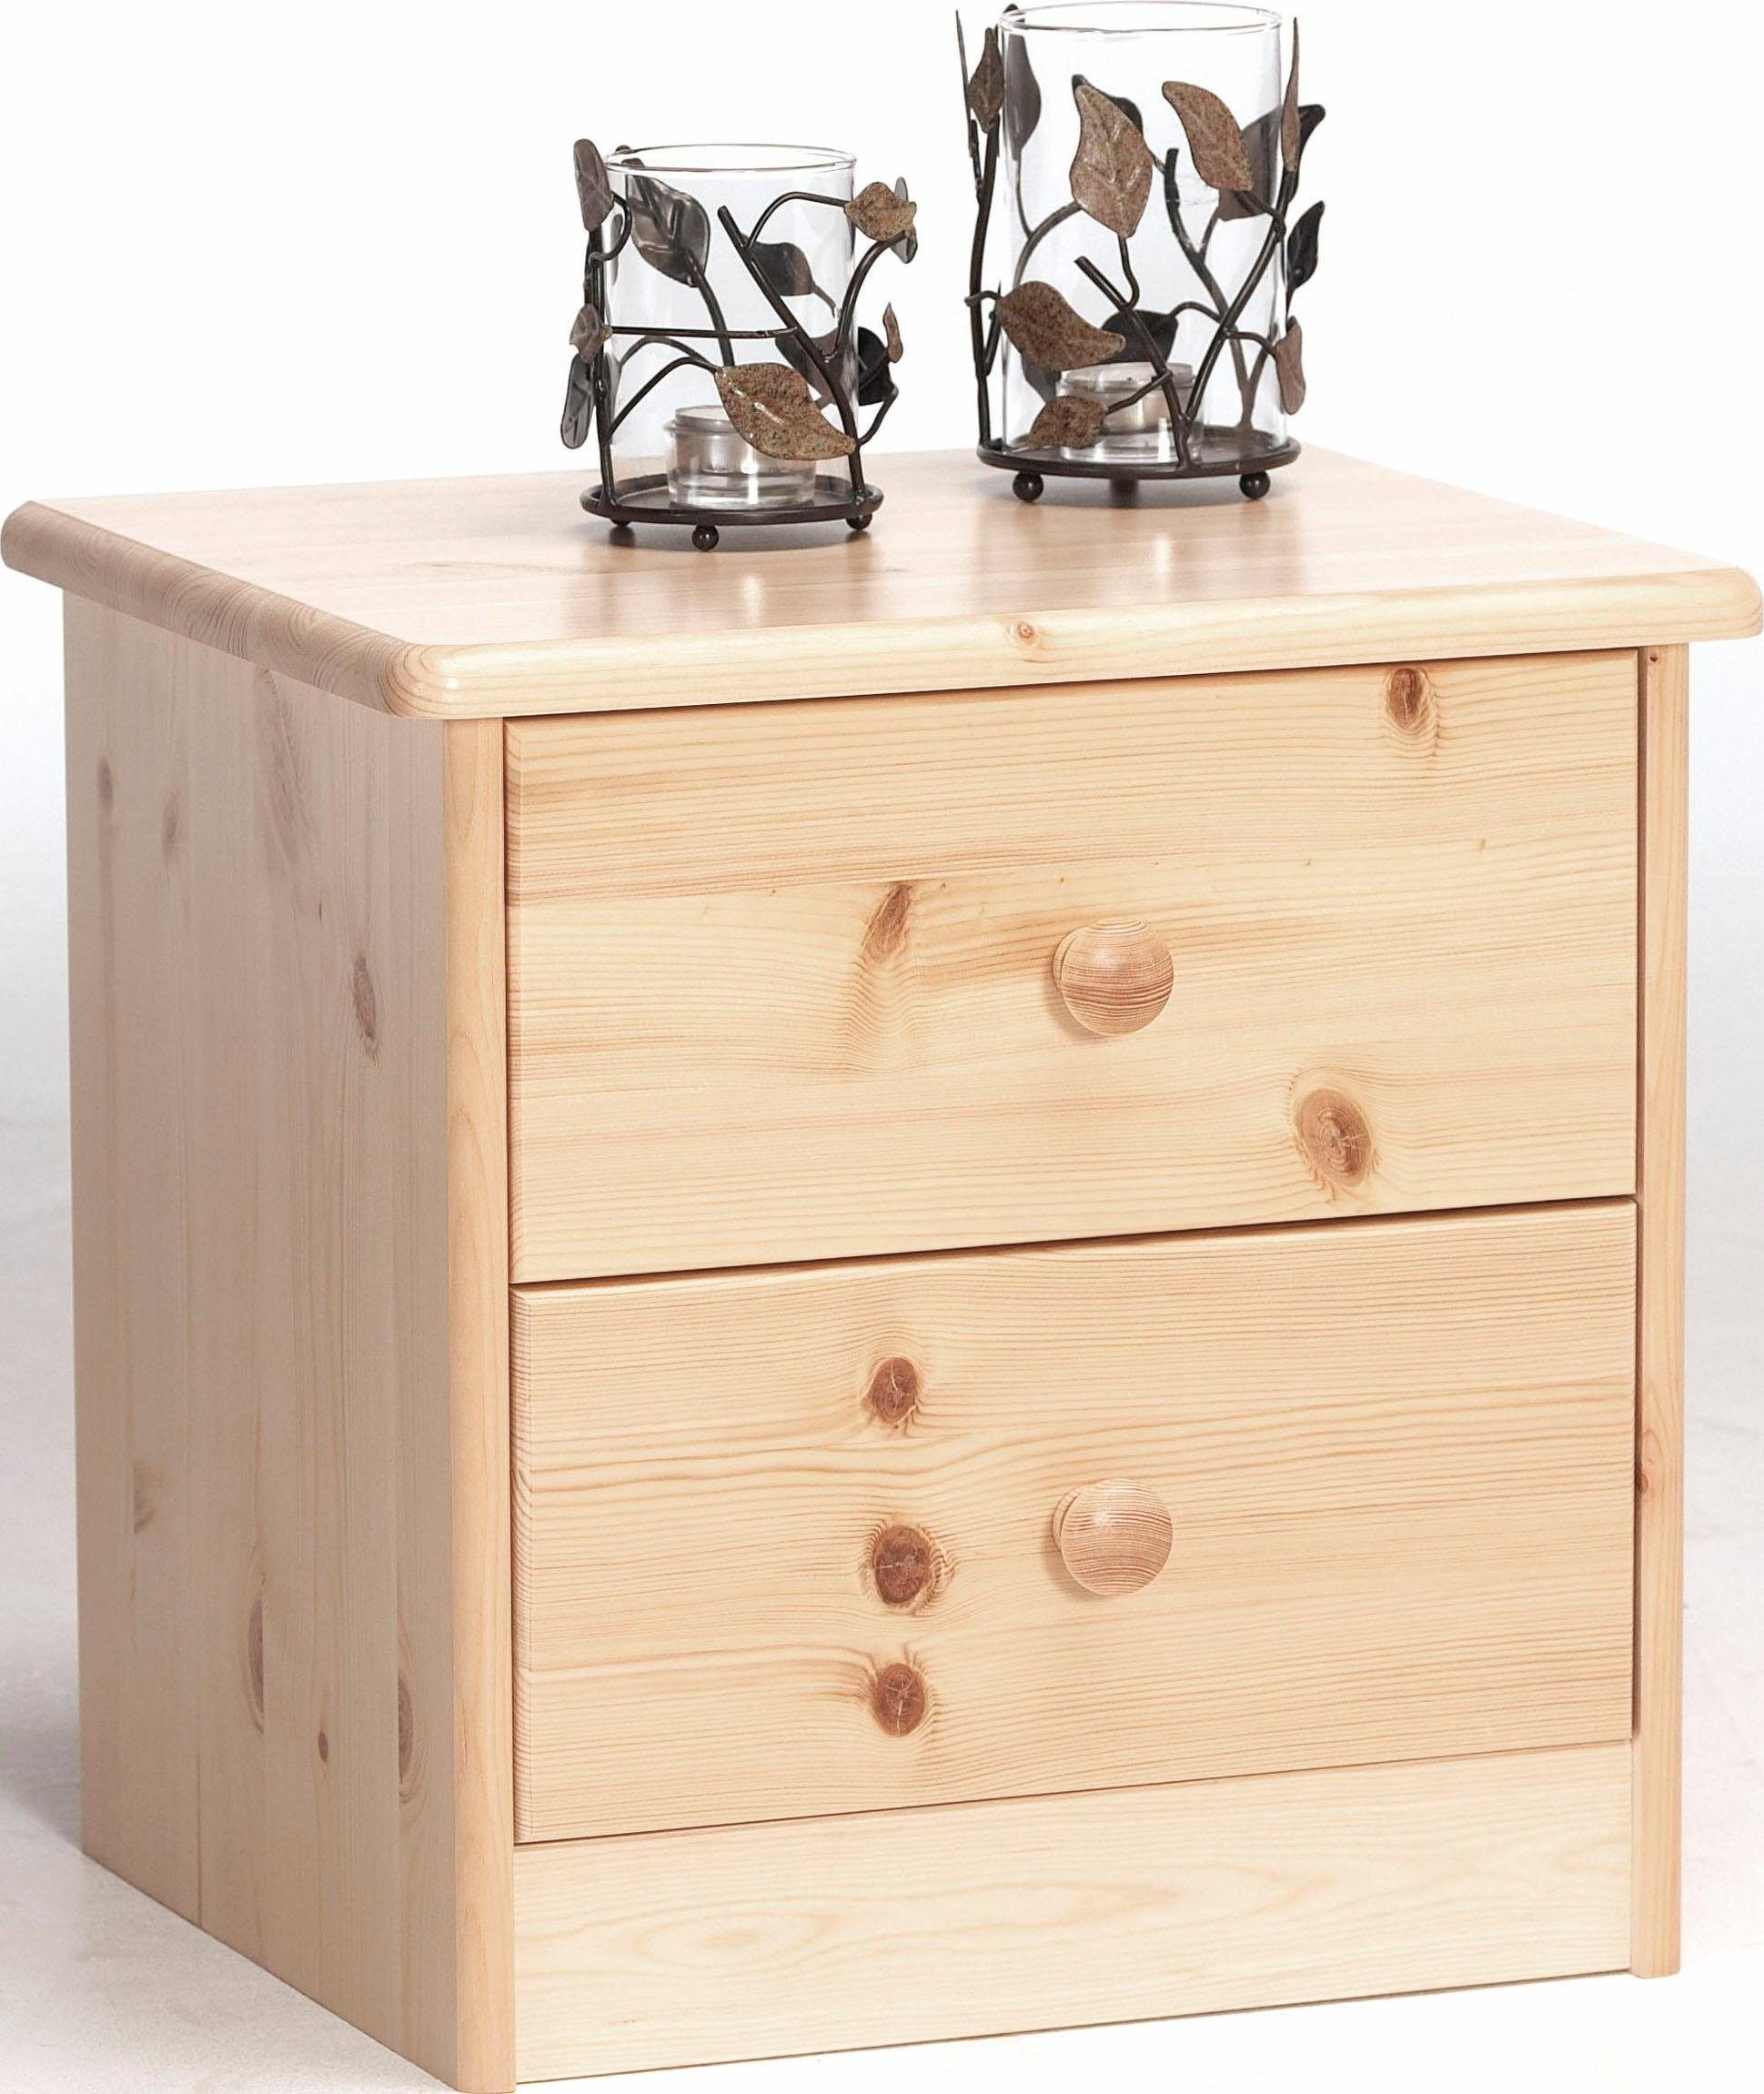 the steens mario 2 drawer bedside is a practical chest of drawers from the bedroom furniture specialist steens the steens mario 2 drawer bedside is made